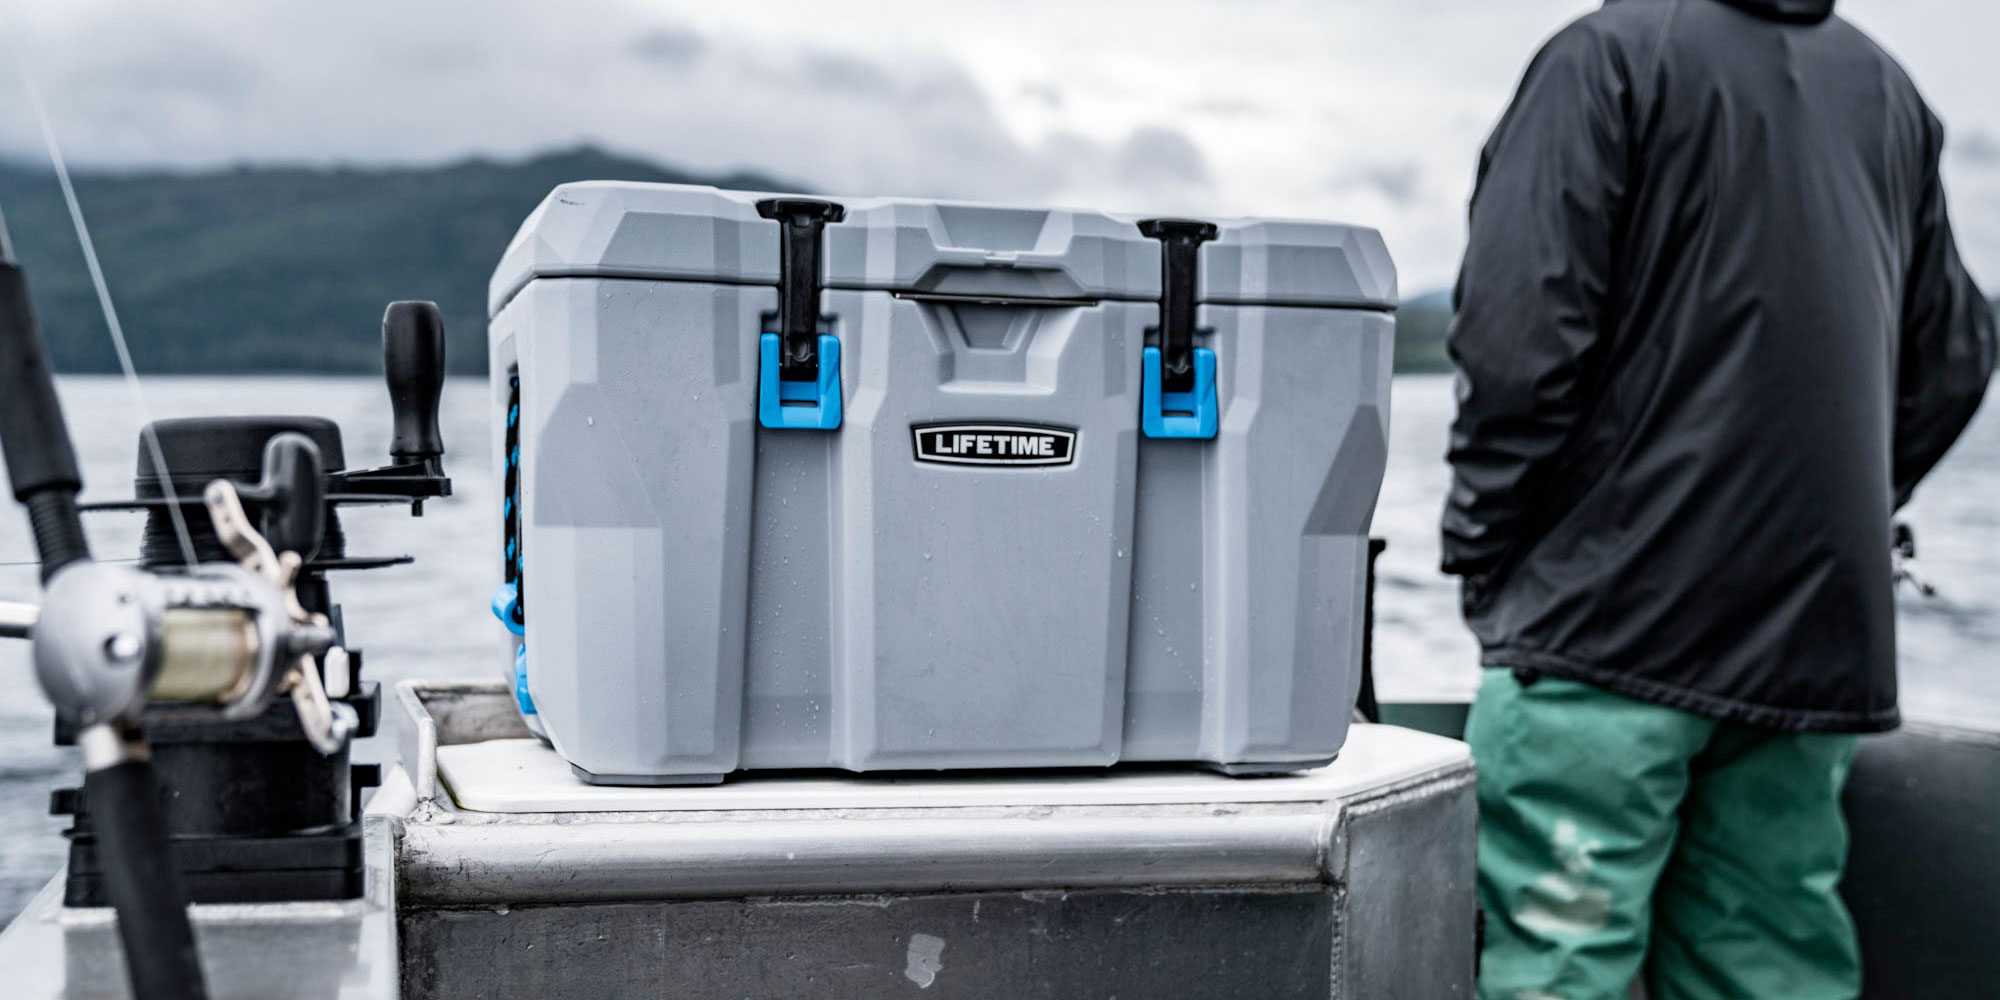 Don't let your ice melt this summer, Lifetime's 55-quart Cooler is down to $97 (Reg. $130)